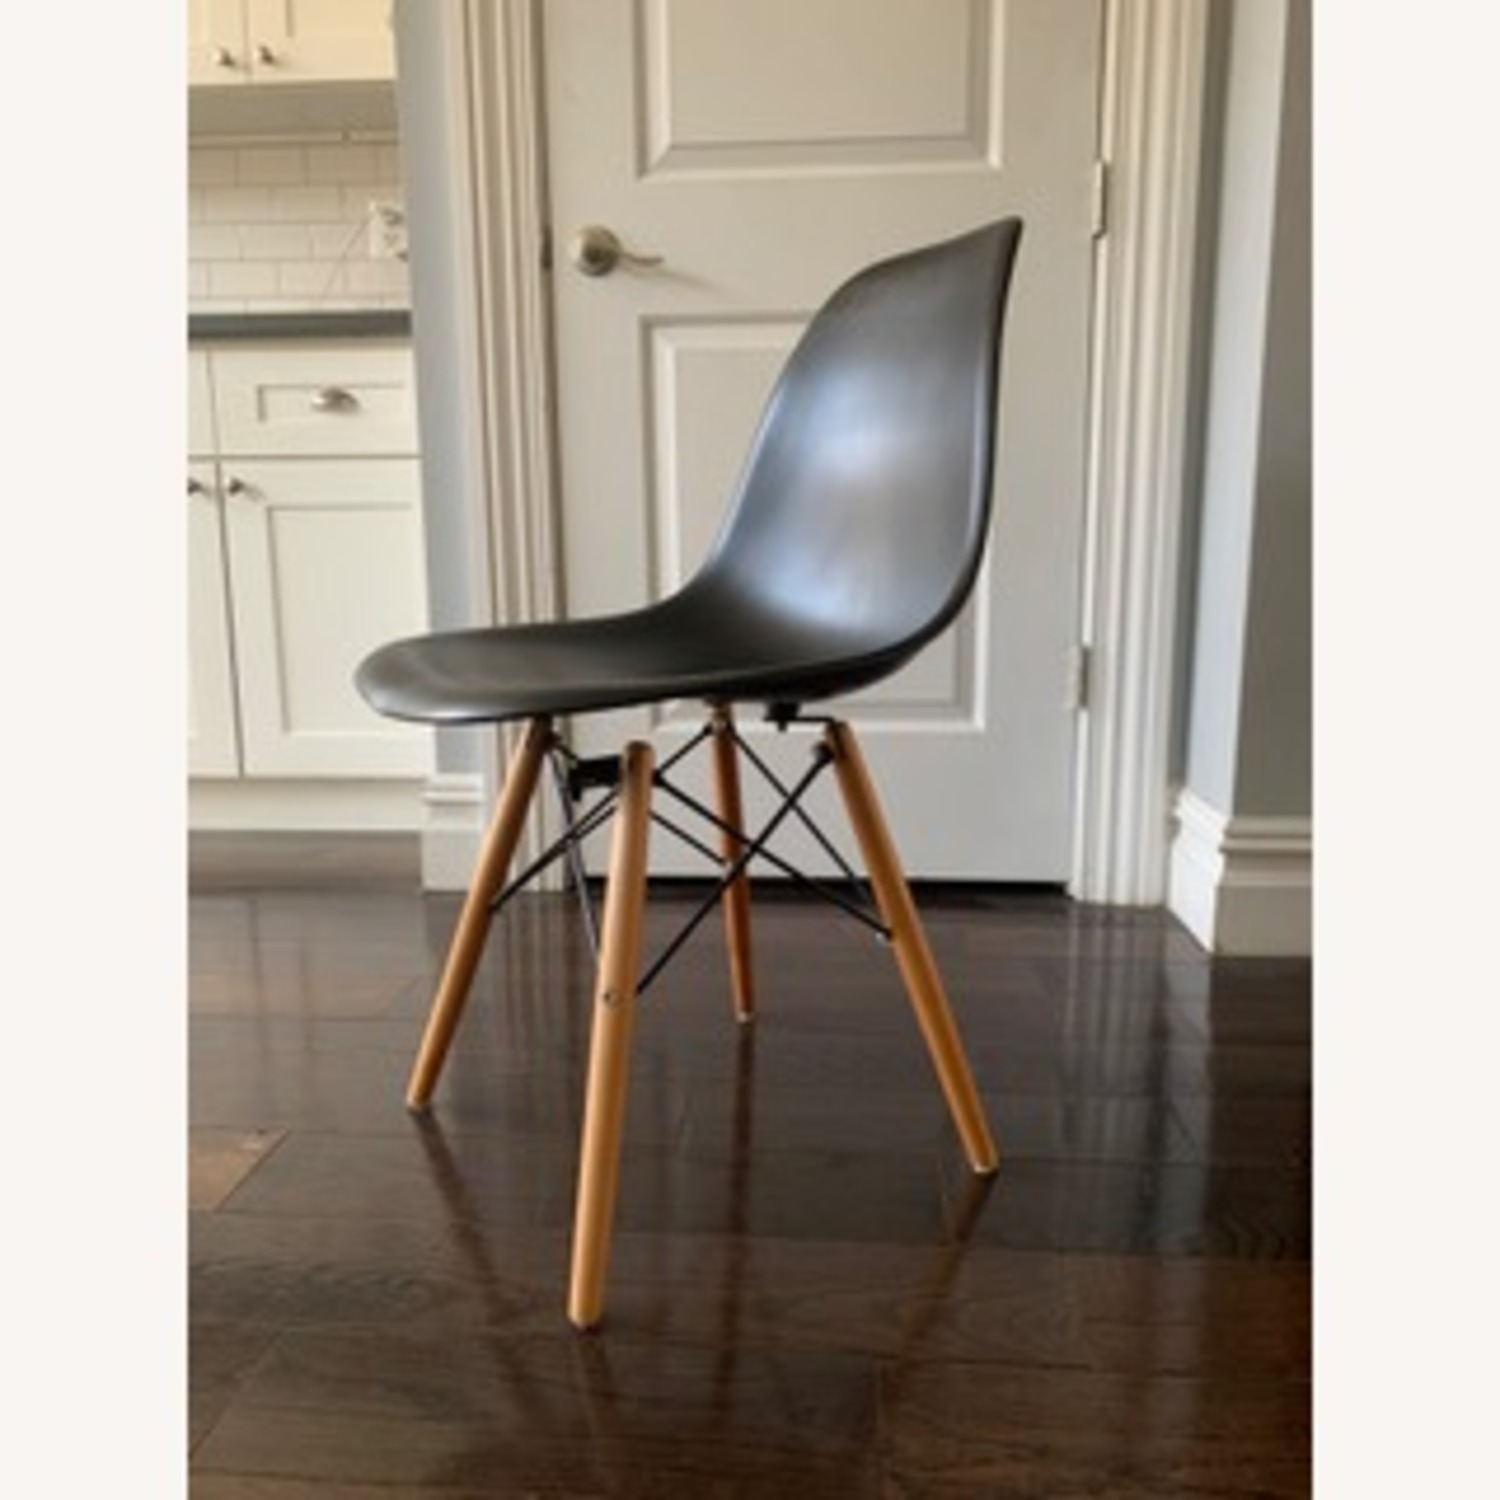 Eames DSW Molded Plastic Side Chairs - Replica x 5 - image-2